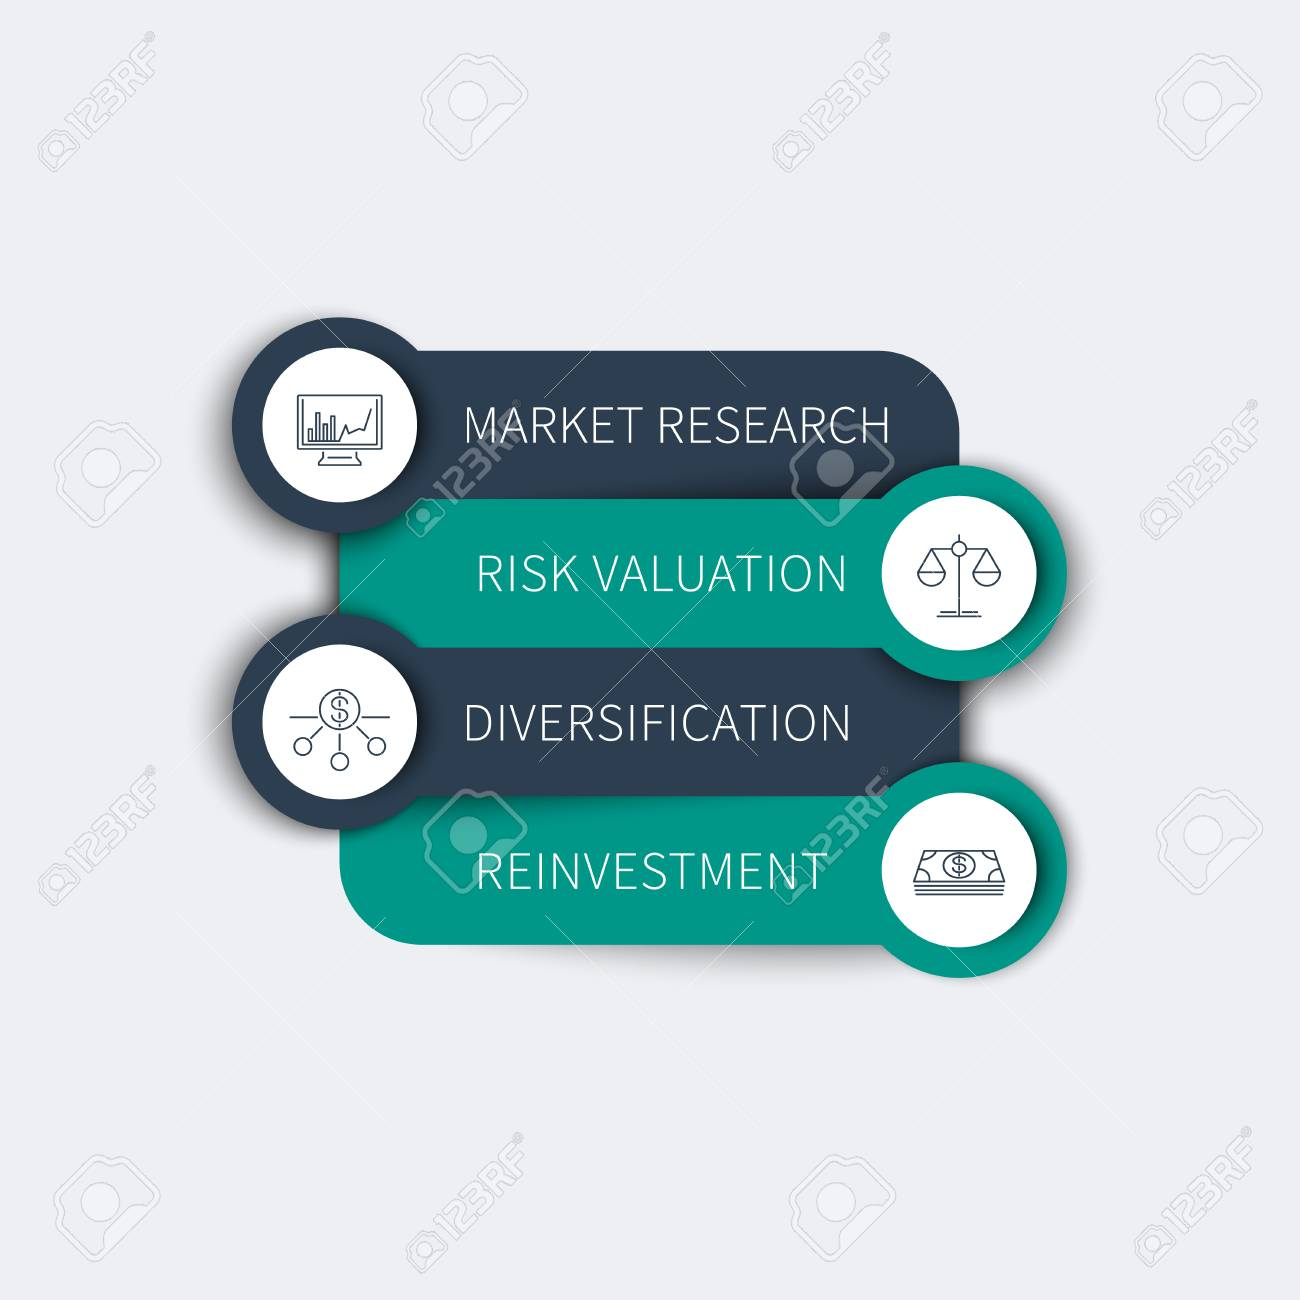 Investment timeline ppt powerpoint presentation graphics.